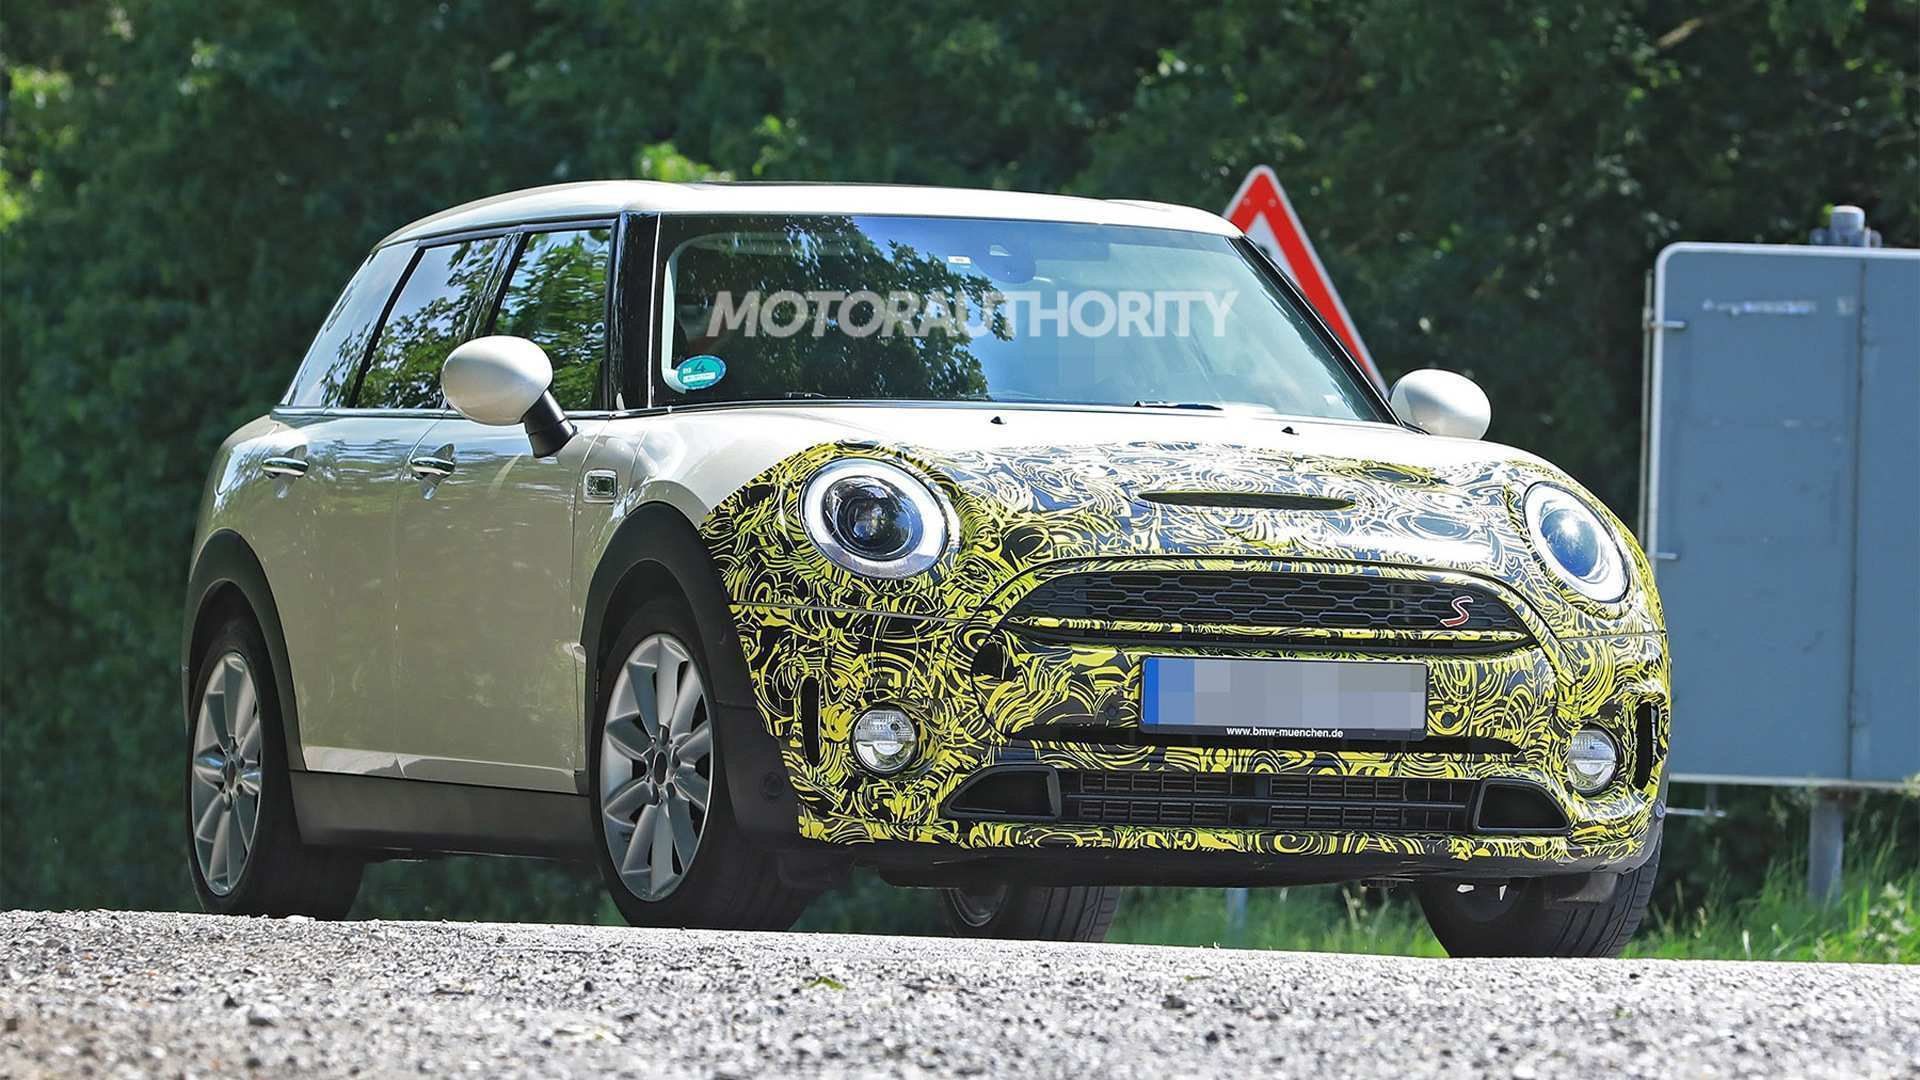 69 All New 2020 Mini Cooper Clubman Picture for 2020 Mini Cooper Clubman